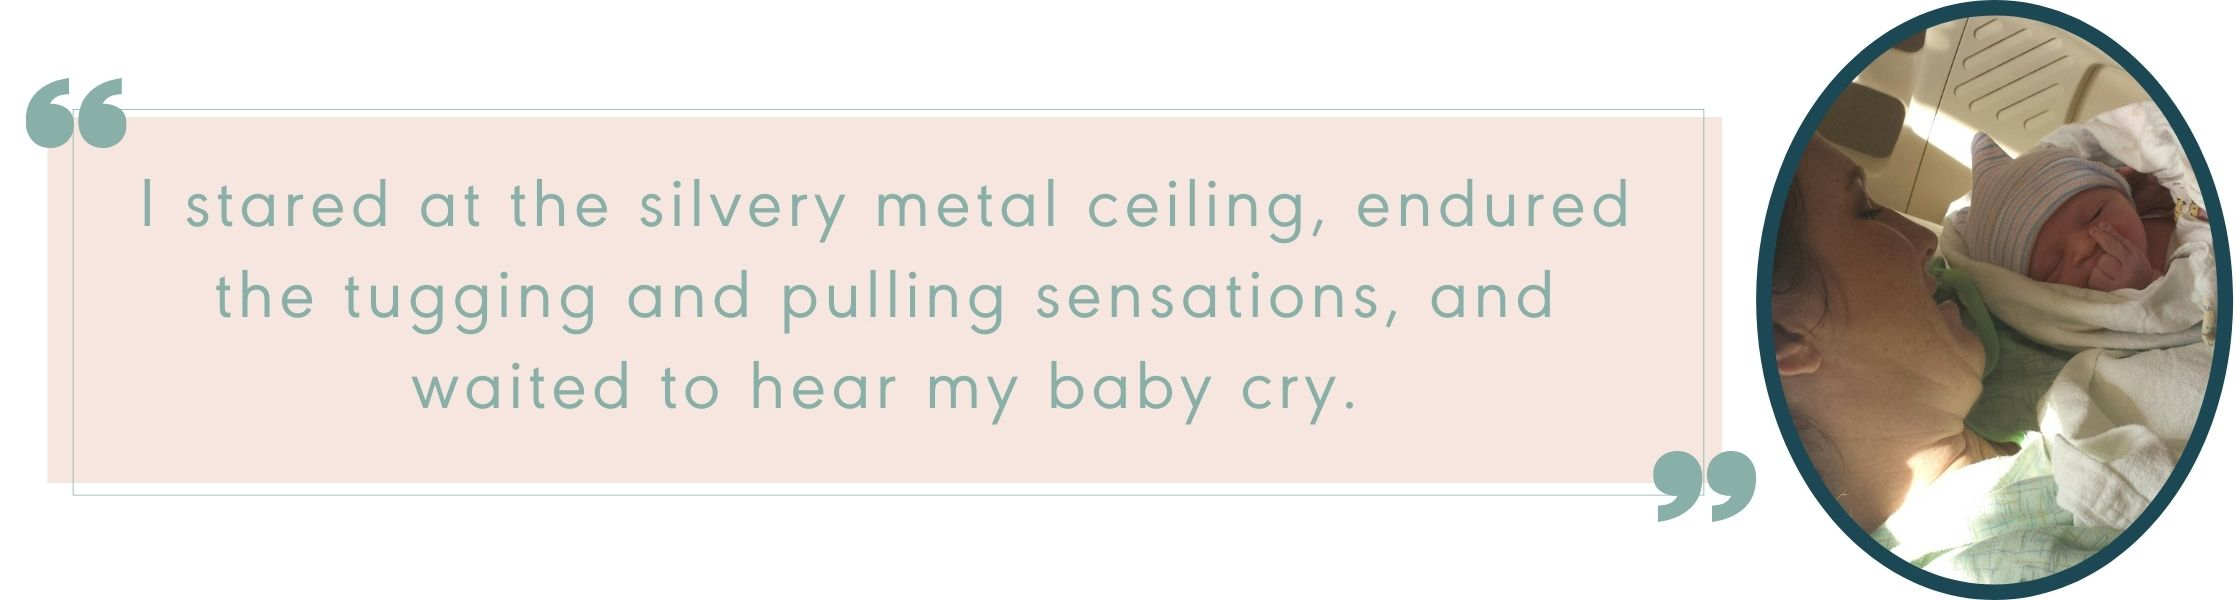 Colleen's Birth Story Quote